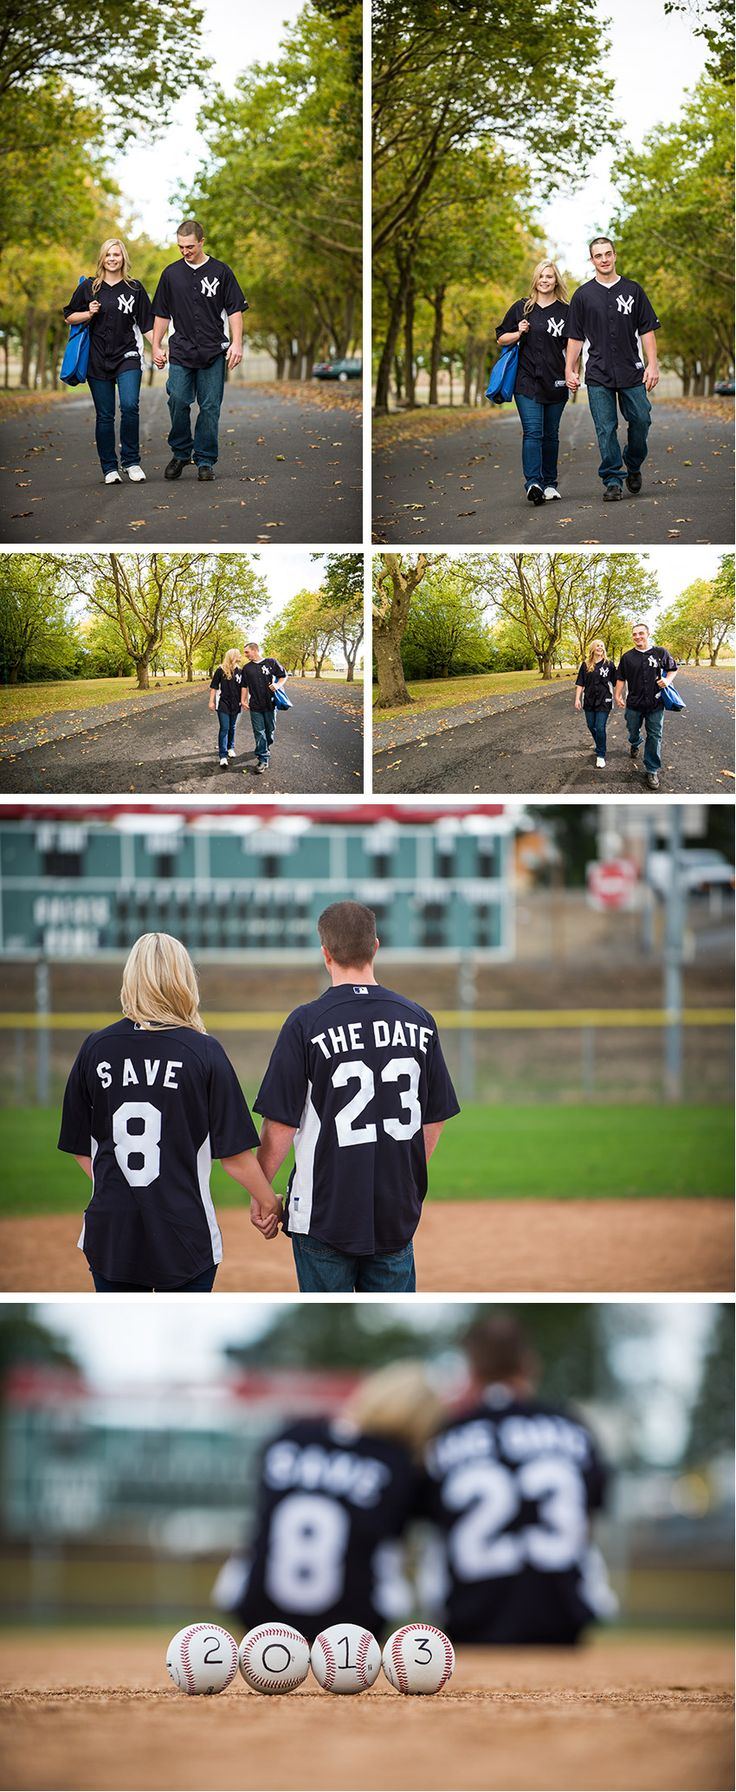 Baseball Theme Engagement shoot Idea,not a fan of the team on the jerseys but it would be cool if it was a Yankee vs red sox couple, i would totally take pictures like this for someone if they wanted them!